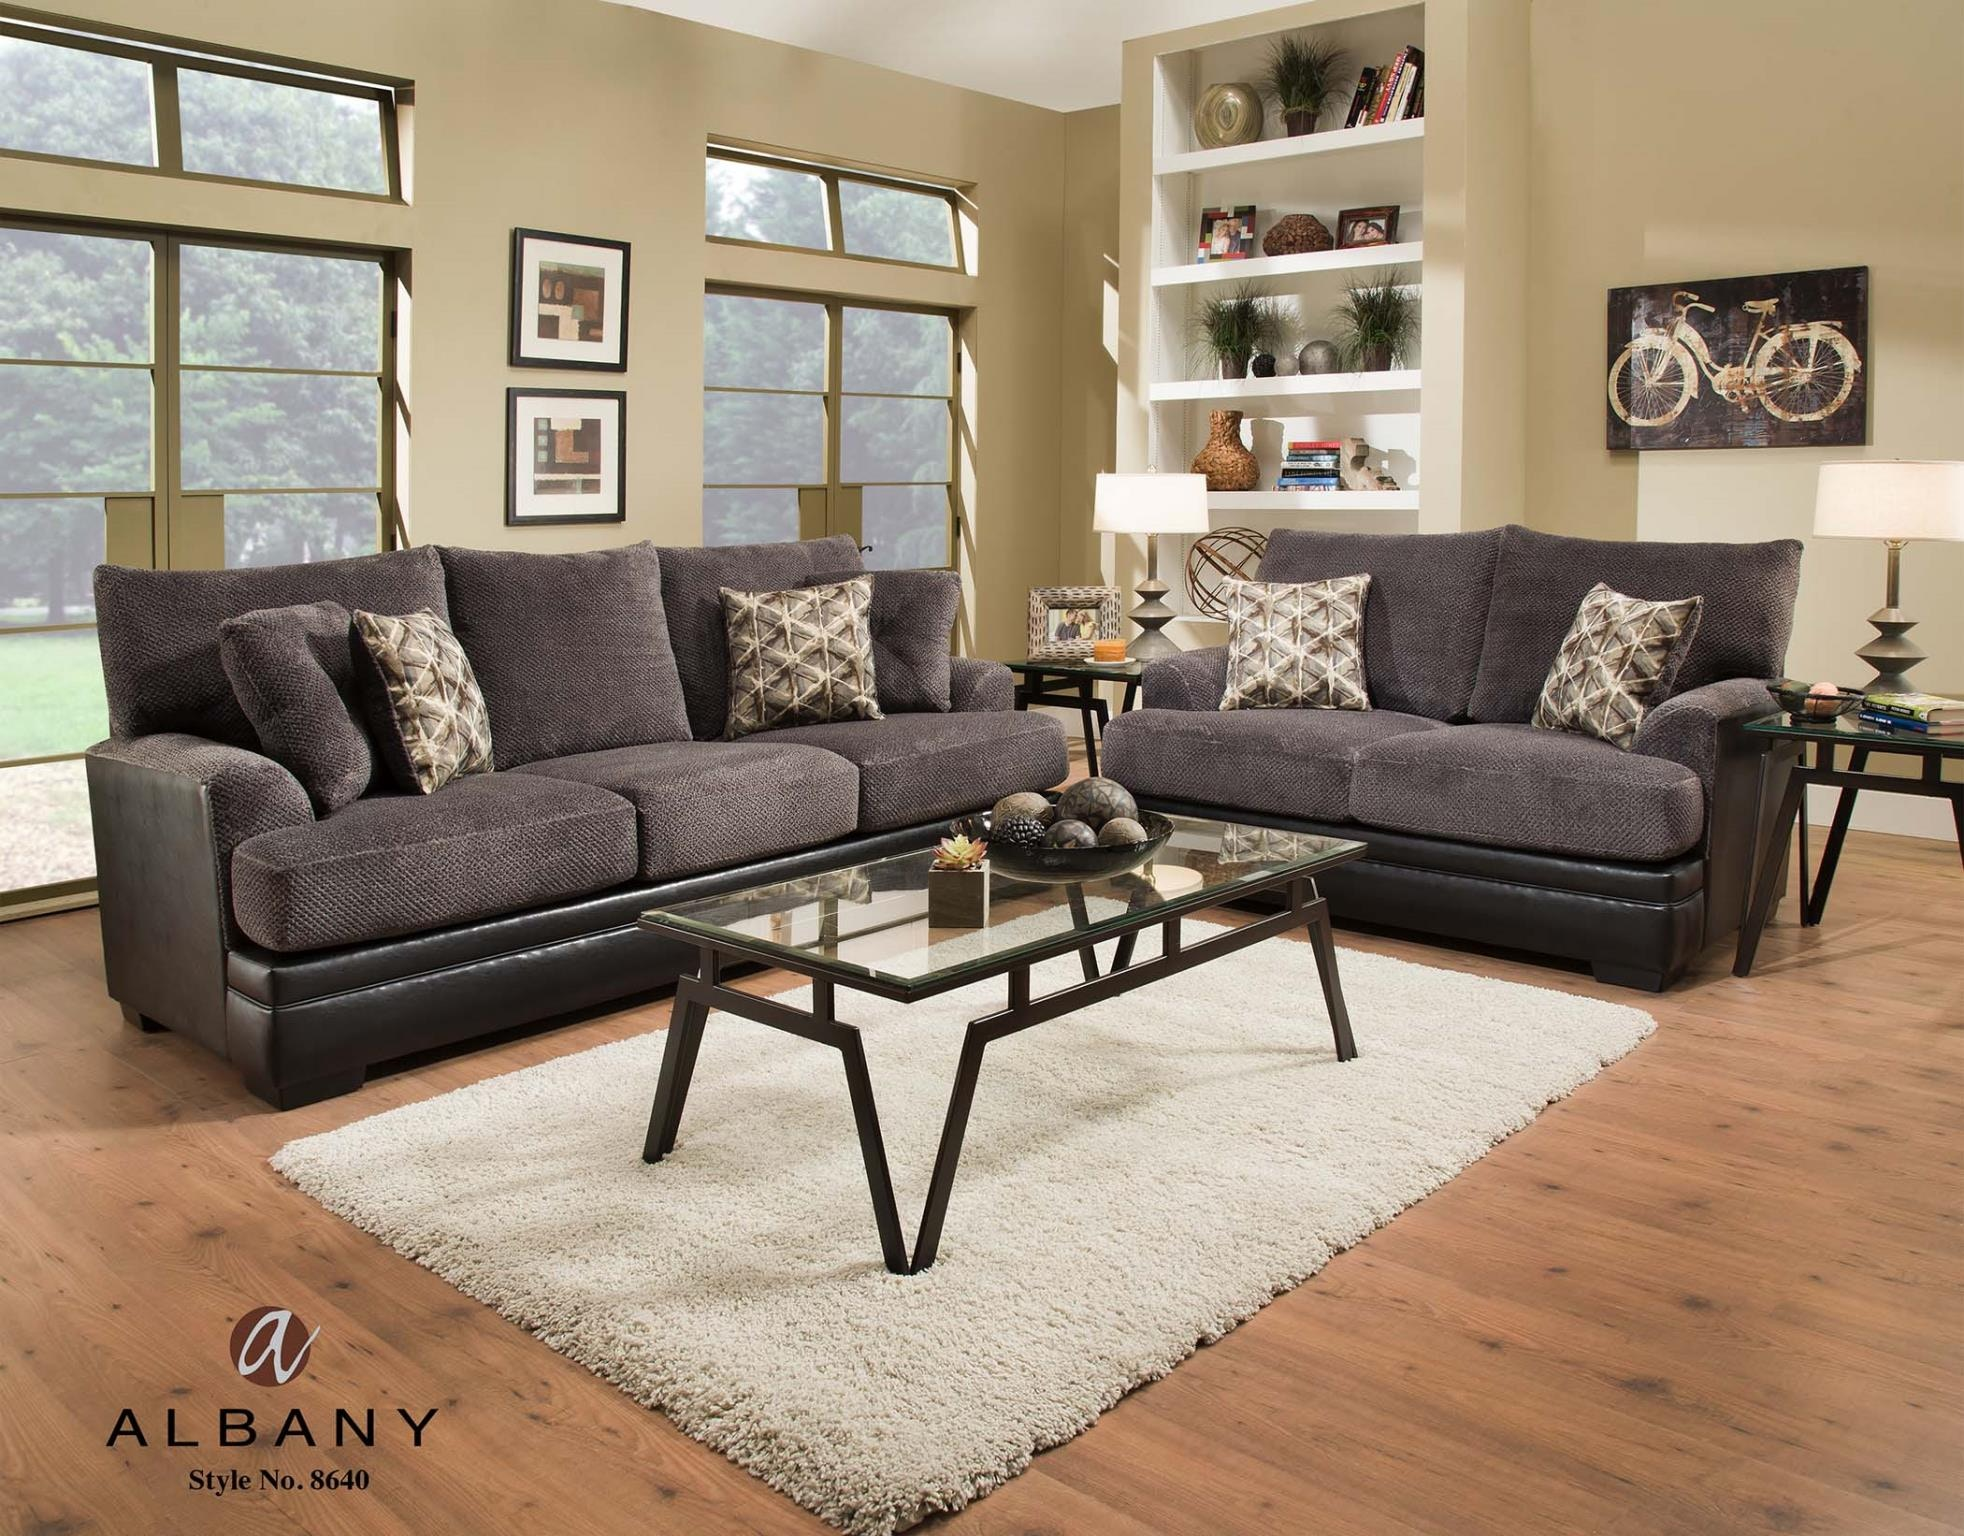 Albany Living Room SOFA Chocolate 8640 00 At Feceras Furniture U0026 Mattress